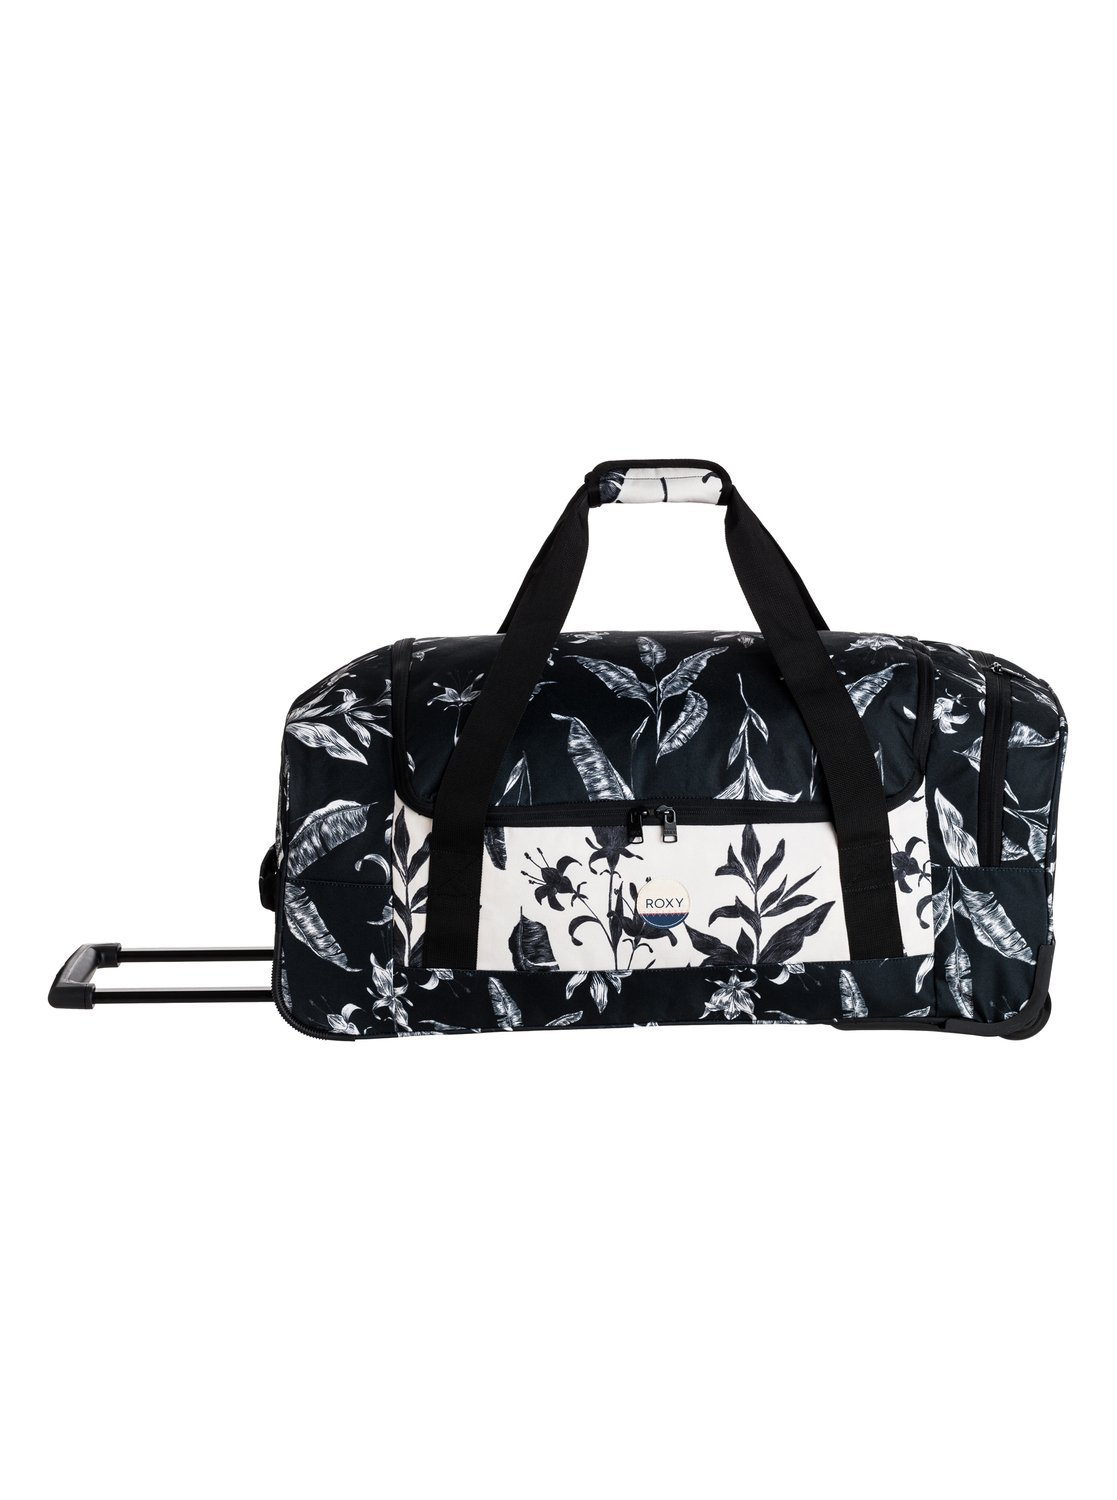 Roxy Womens Distance Across 60L - Large Wheelie Duffle Bag - Women - One Size - Black Anthracite Love Letter One Size